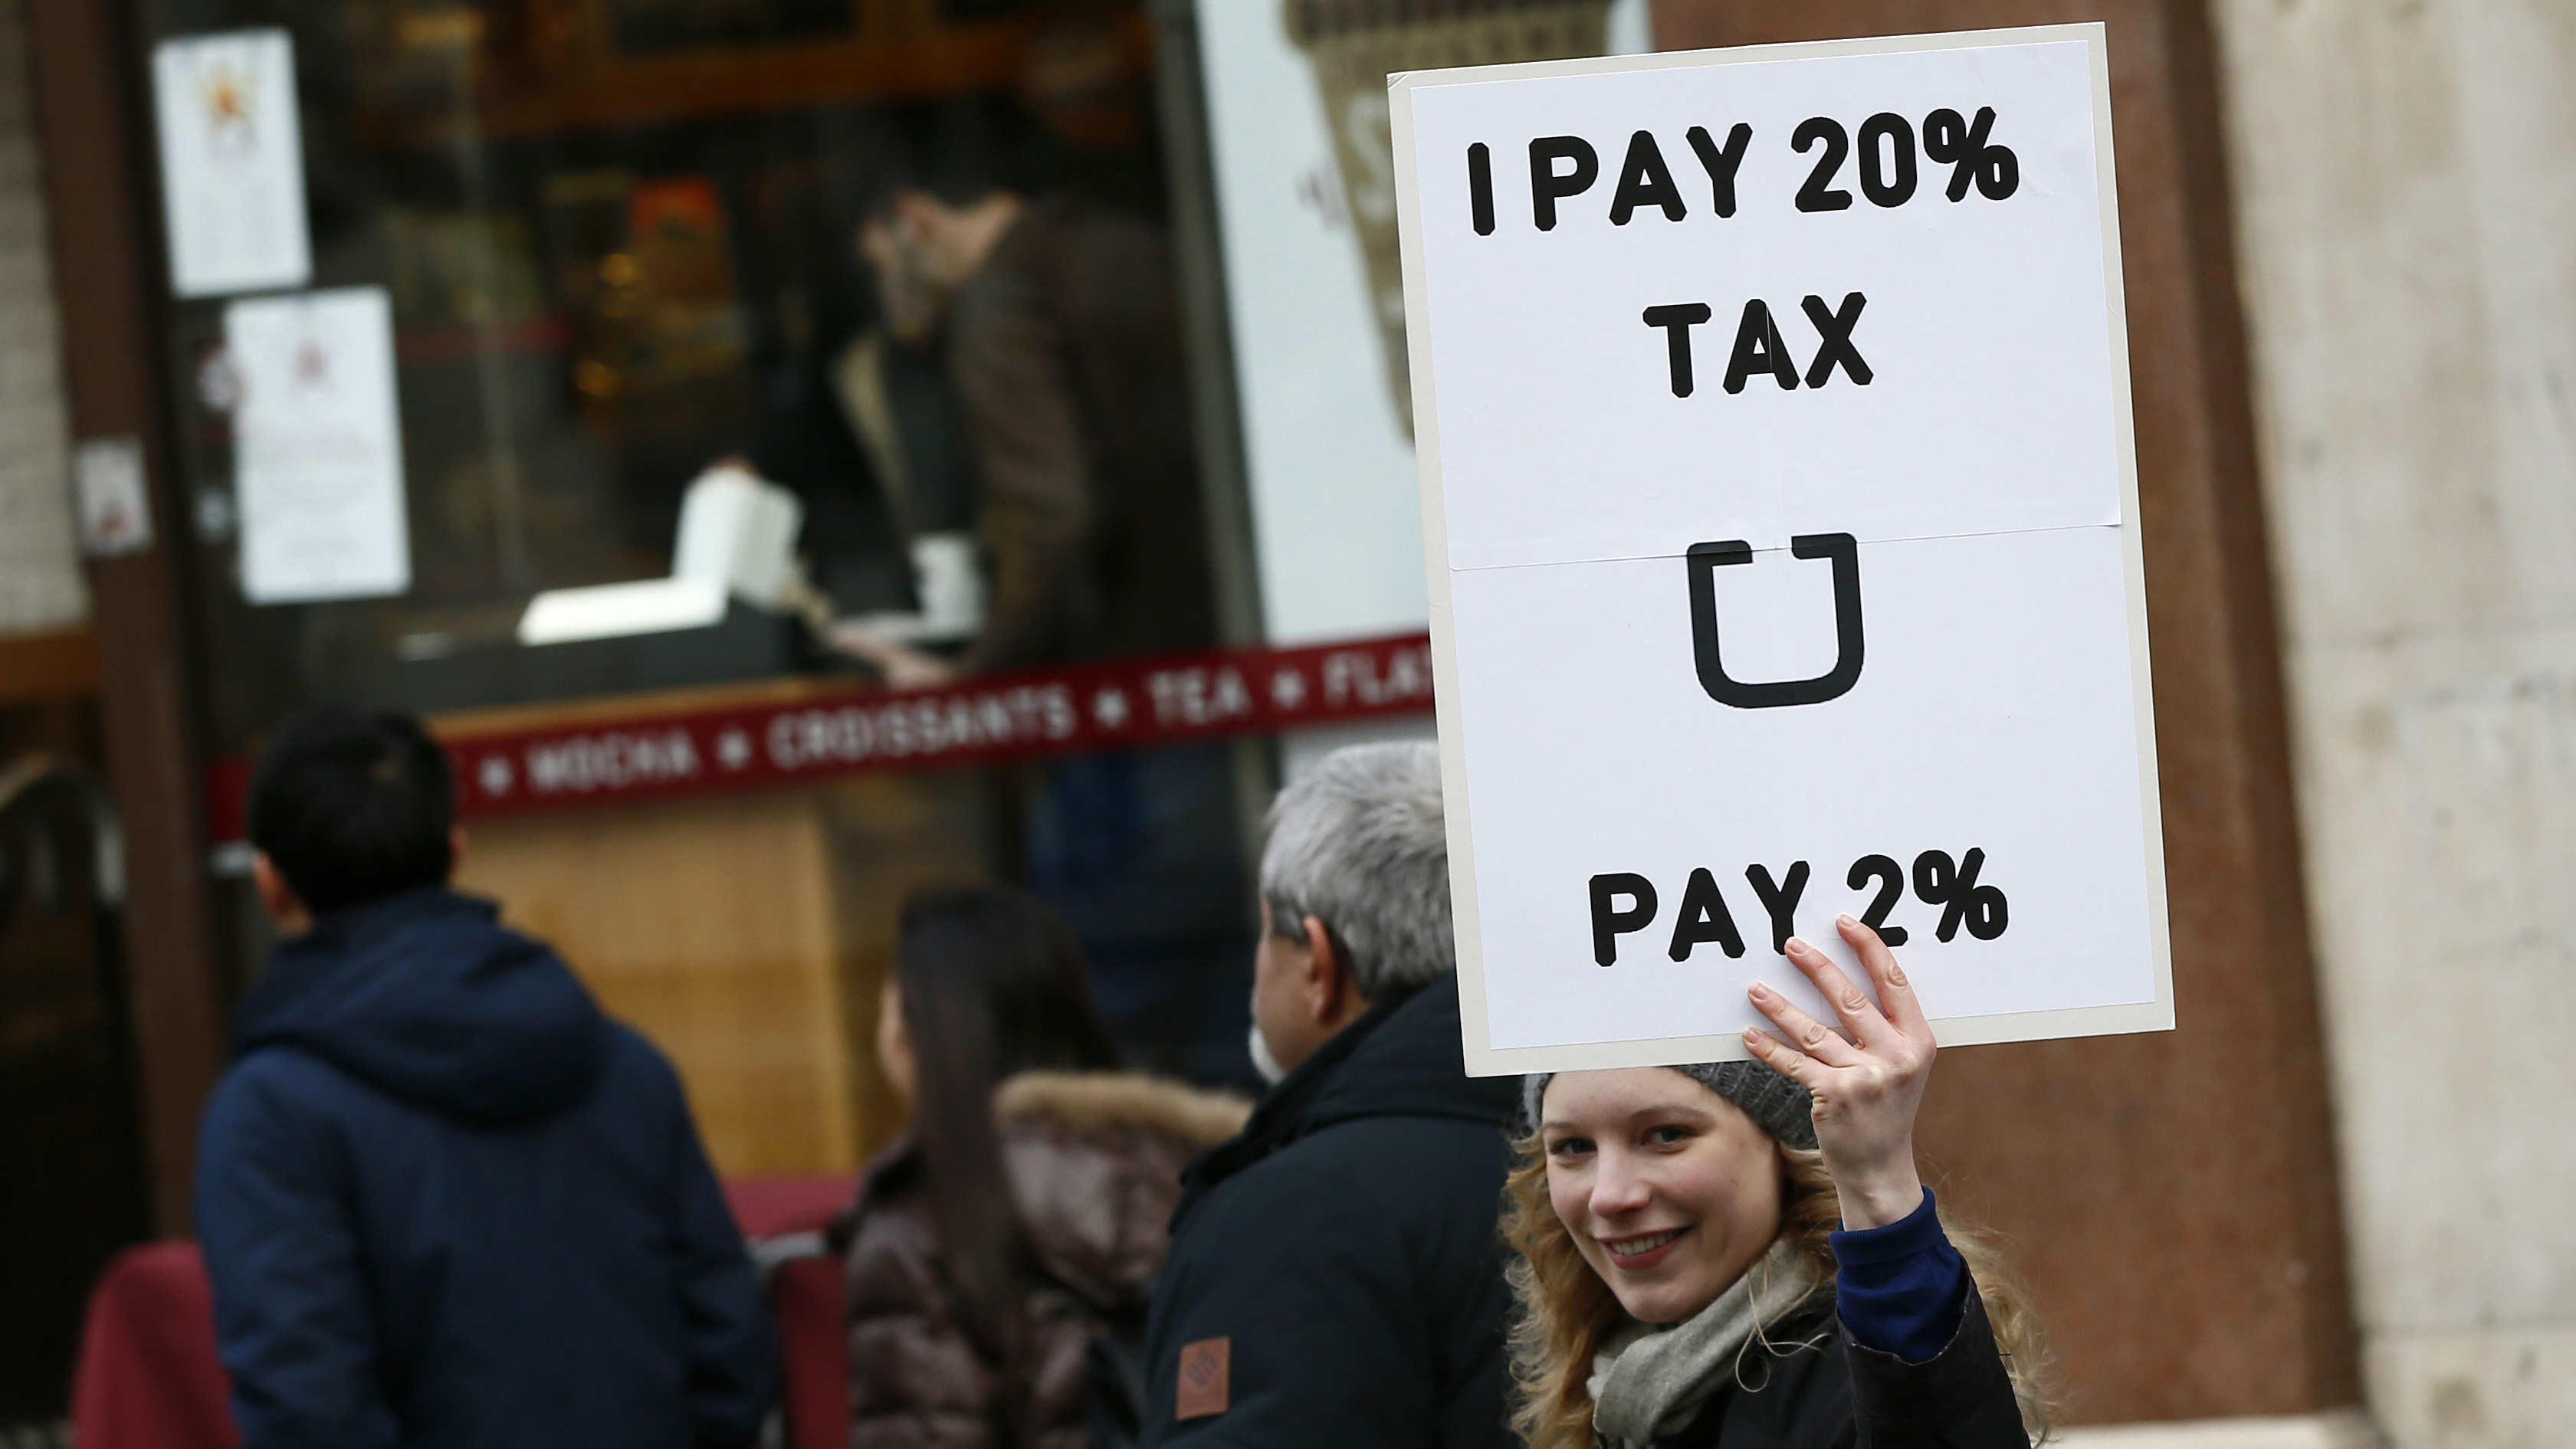 A protester holds up a placard in a protest by London cab drivers against Uber in central London, Britain February 10, 2016. REUTERS/Stefan Wermuth